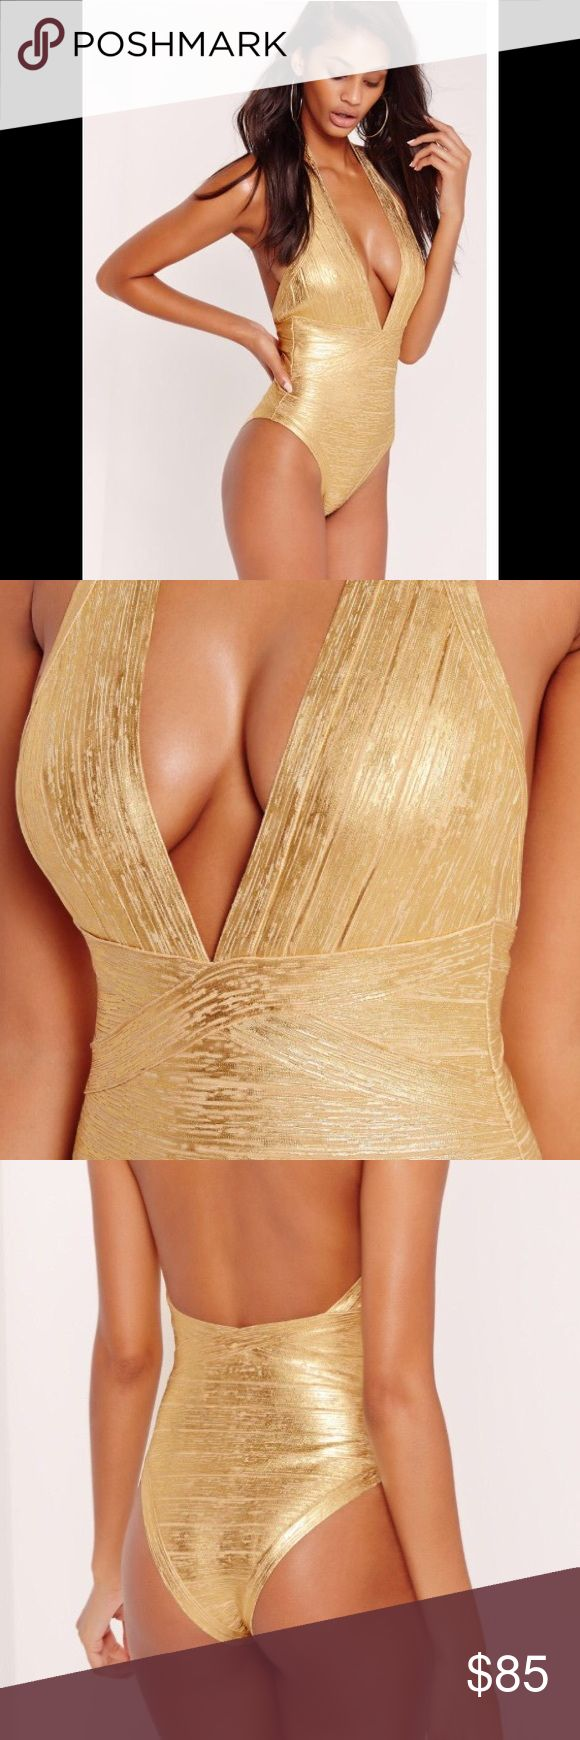 NWT PREMIUM FABRIC METALLIC GOLD BANDAGE SWIMSUIT NWT THIS ONE PIECE GOLD DEEP V NECK HALTER TOP SWIMSUIT WILL MAKE EVERY HEAD TURN! Made of a premium metallic golden 90% viscose, 9% nylon and 1% elastane fabric, it will hug your figure with a high shine finish to sparkle in the sun!!! Regular/stretch fit. Concealed back zipper. Hand wash. Missguided Swim One Pieces